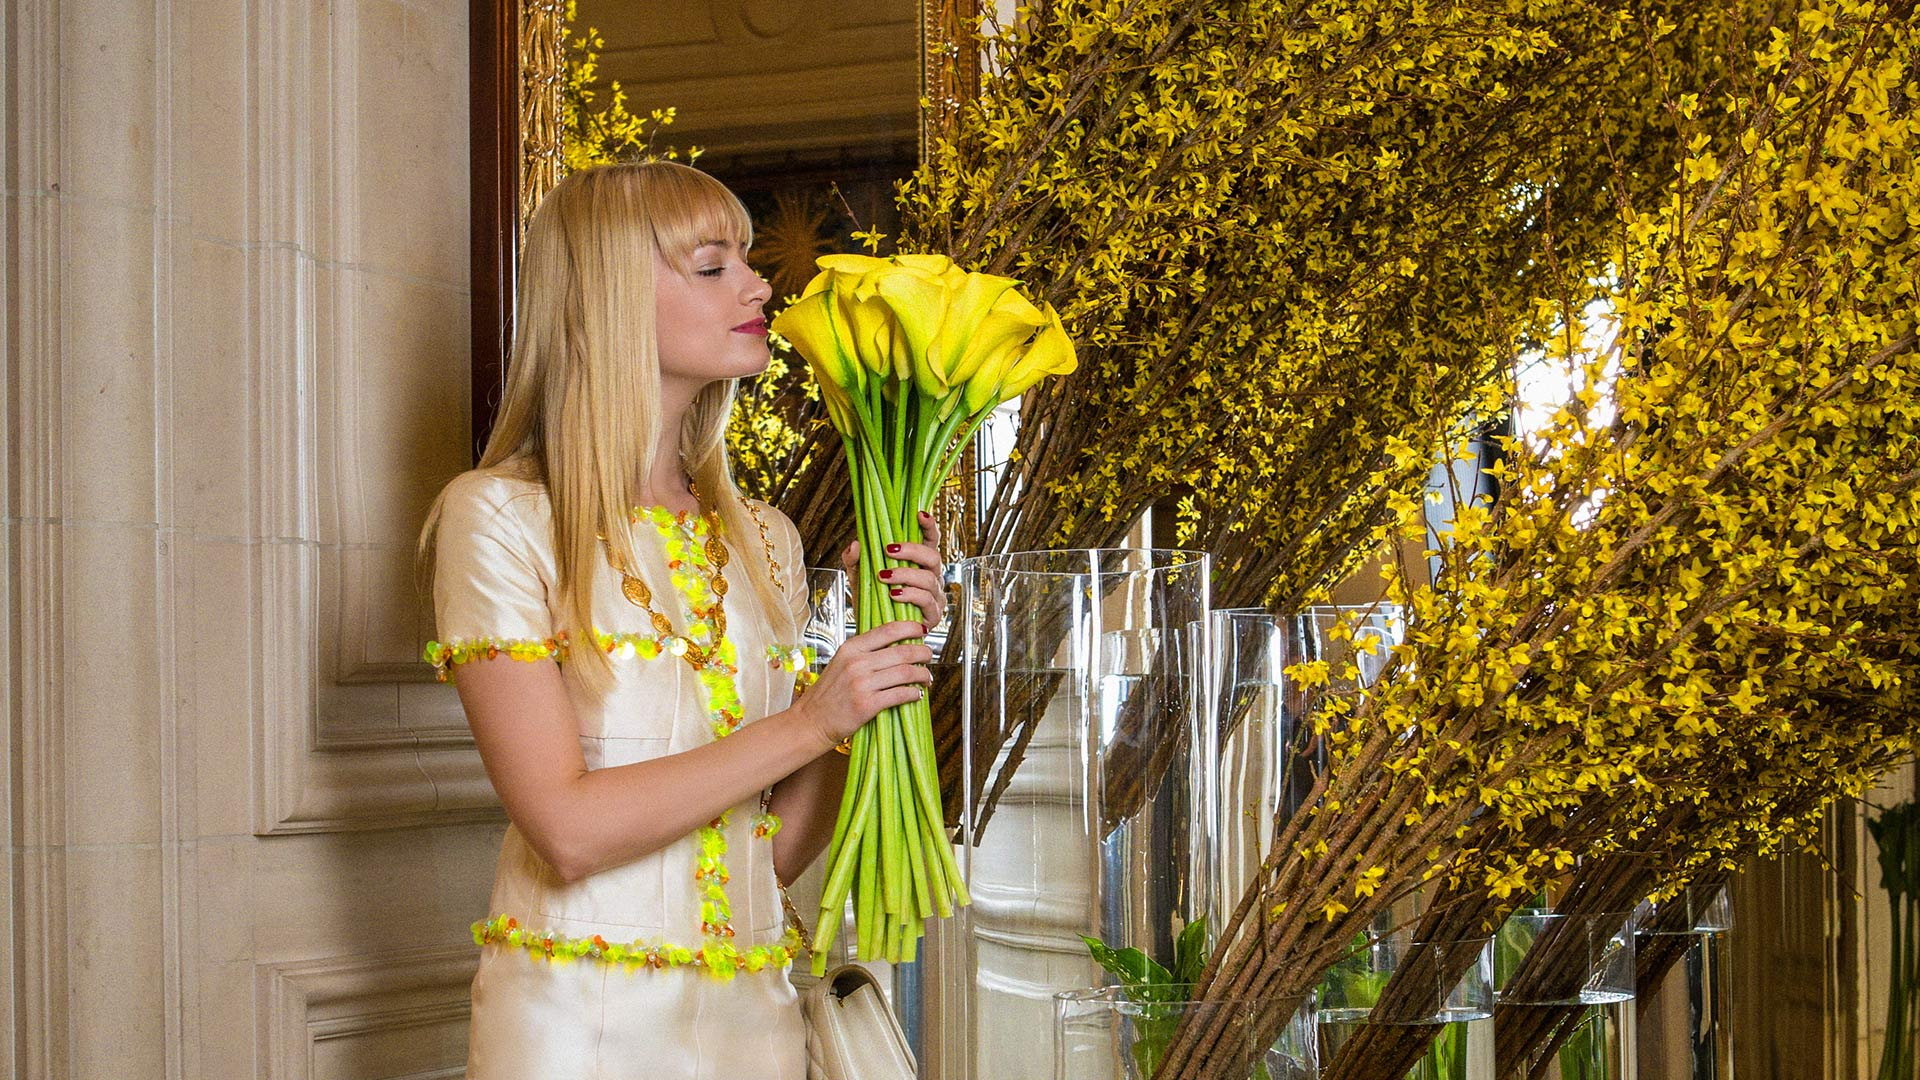 Beth Behrs stops to smell the flowers